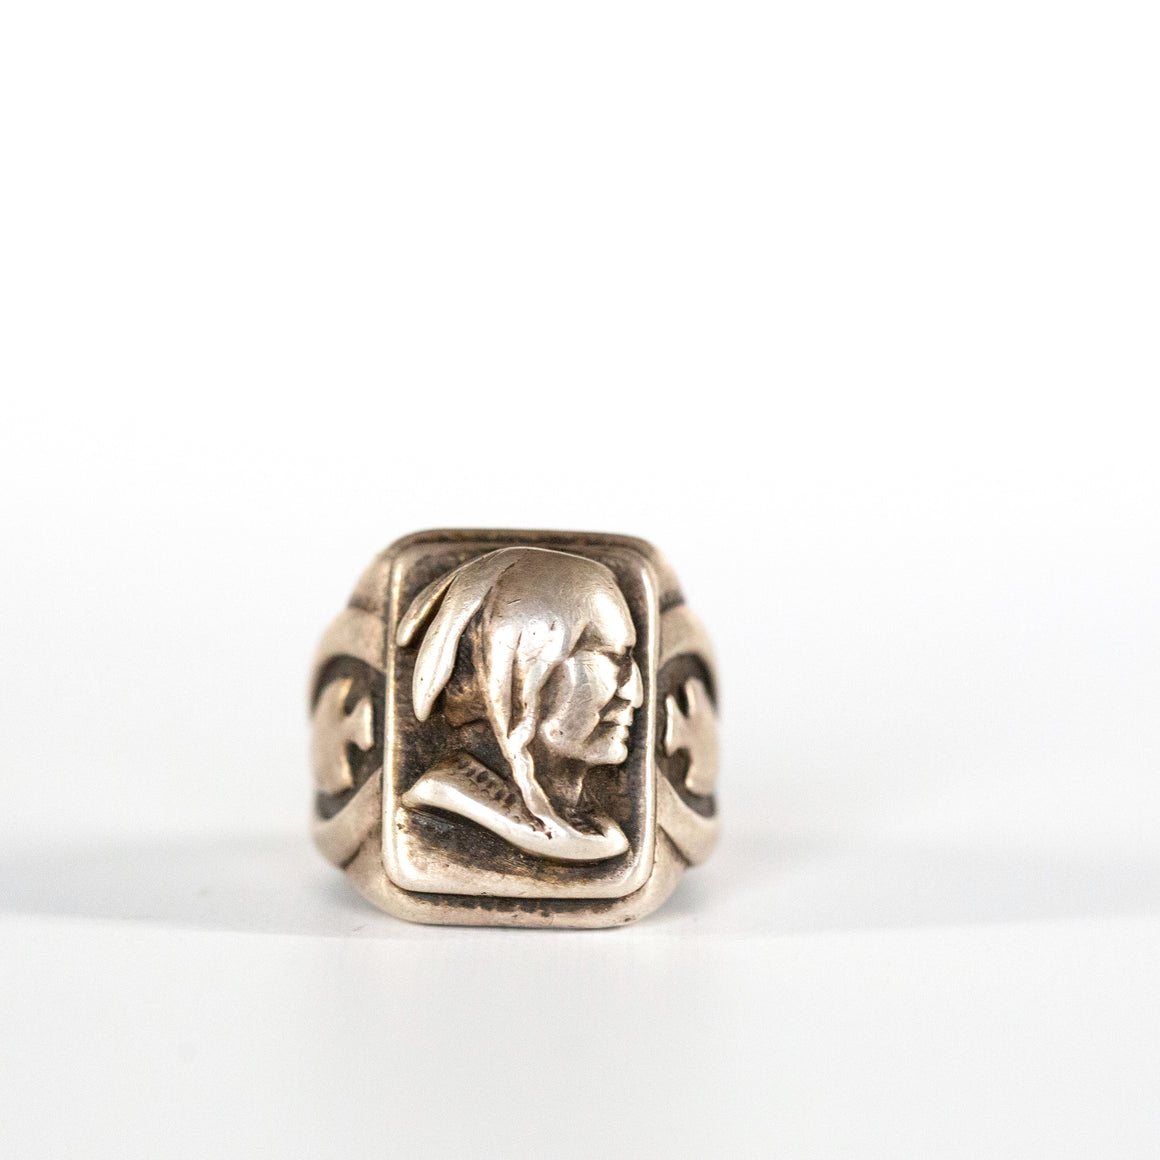 VINTAGE JEWELRY | HEAVY STERLING MEXICAN INDIAN BIKER RING (SIZE 11)